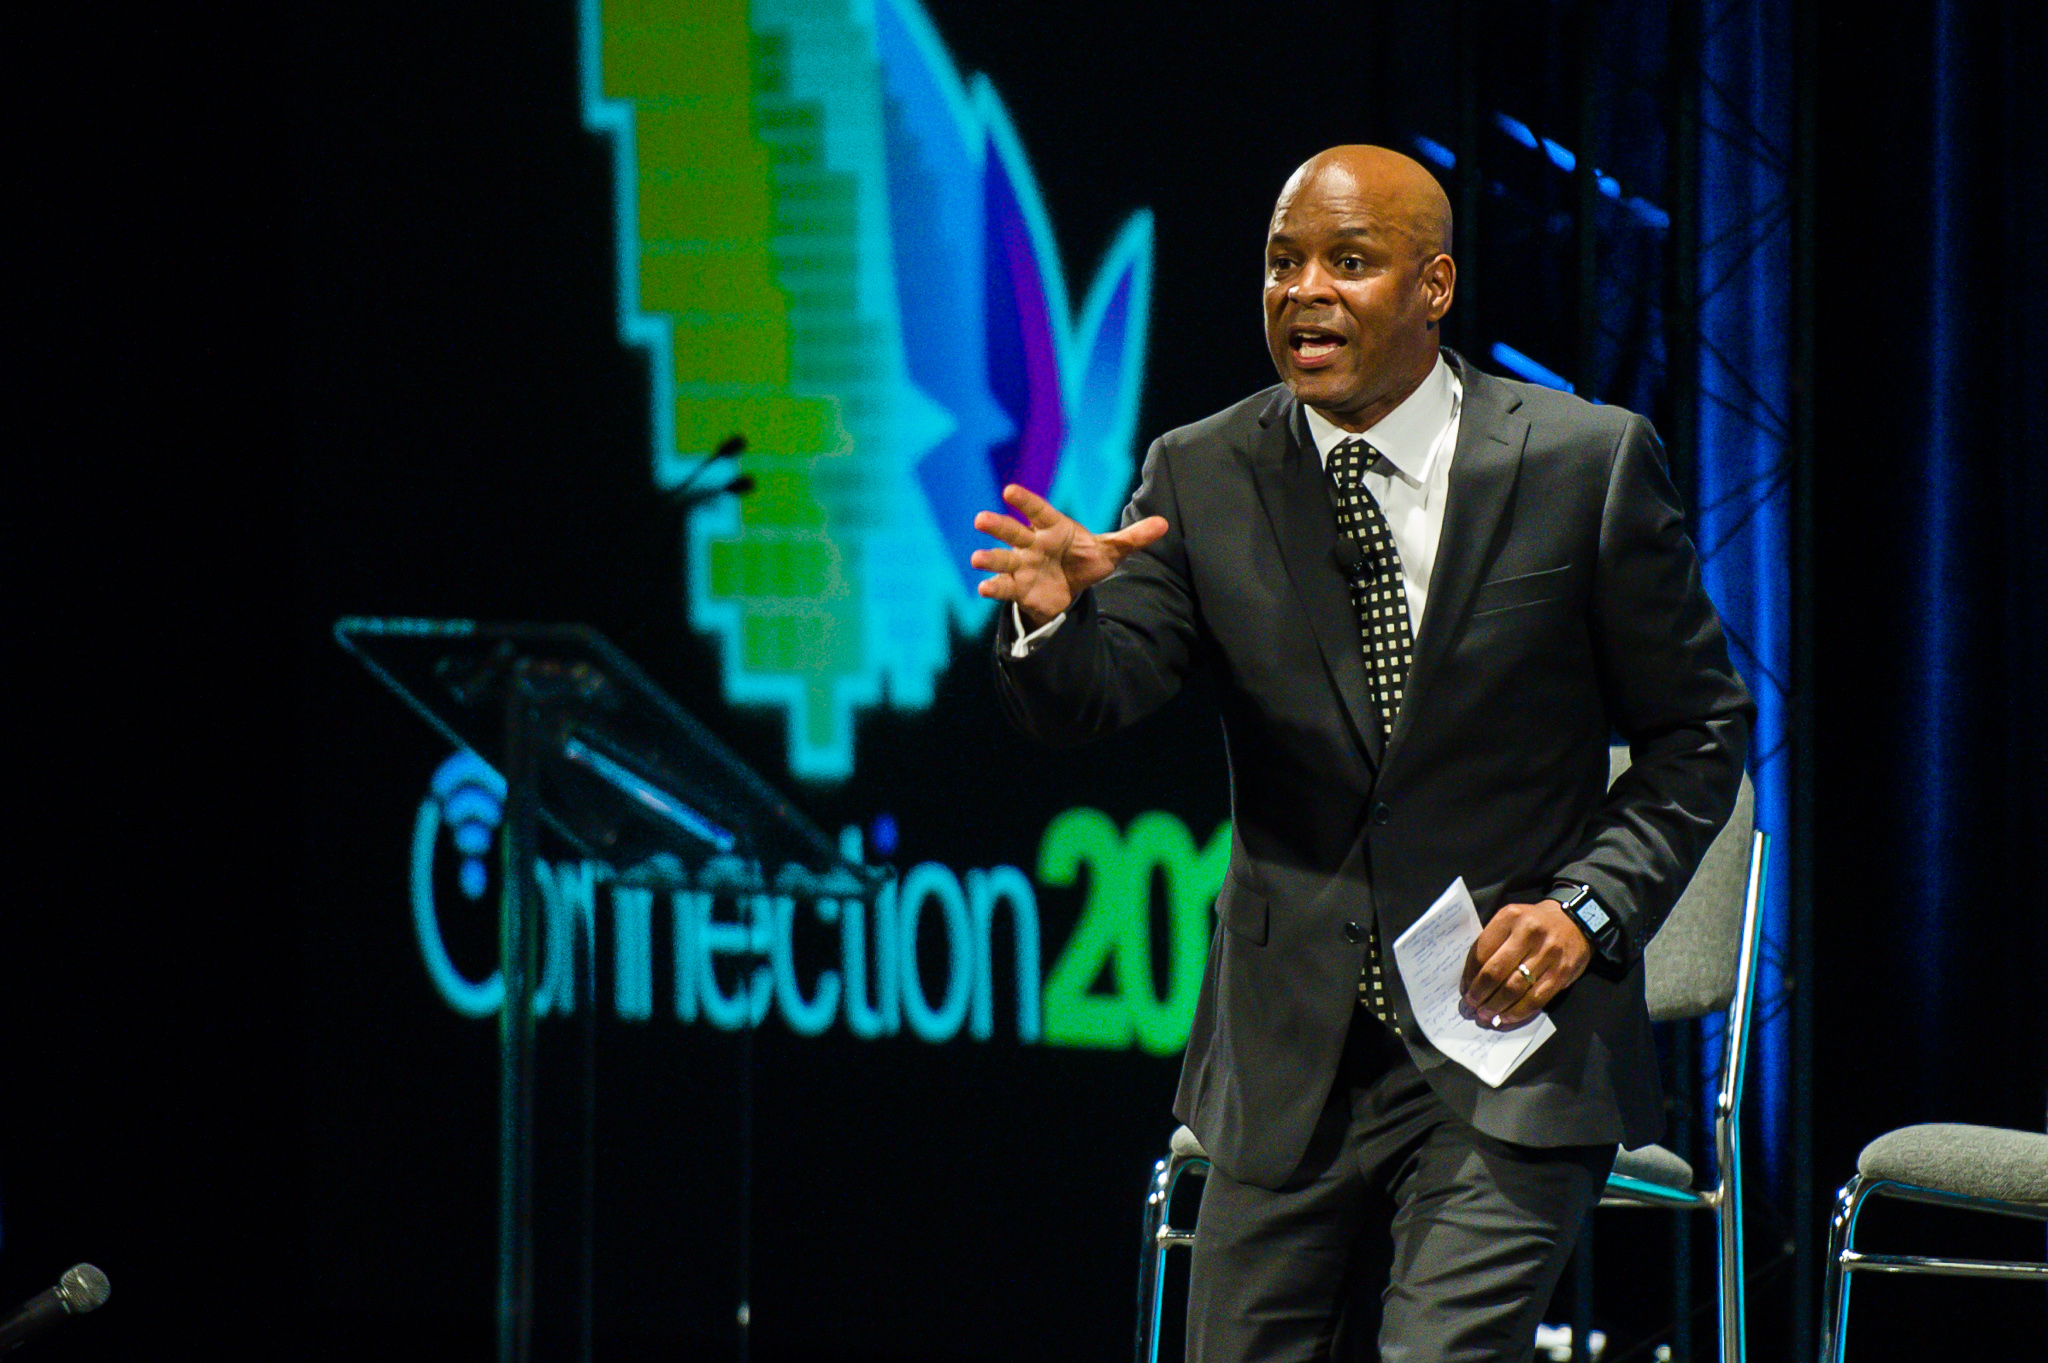 Whetstone Inc President Adrian Davis inspires the community to continue forging ahead with a very personal message at WBM's Connection 2016.